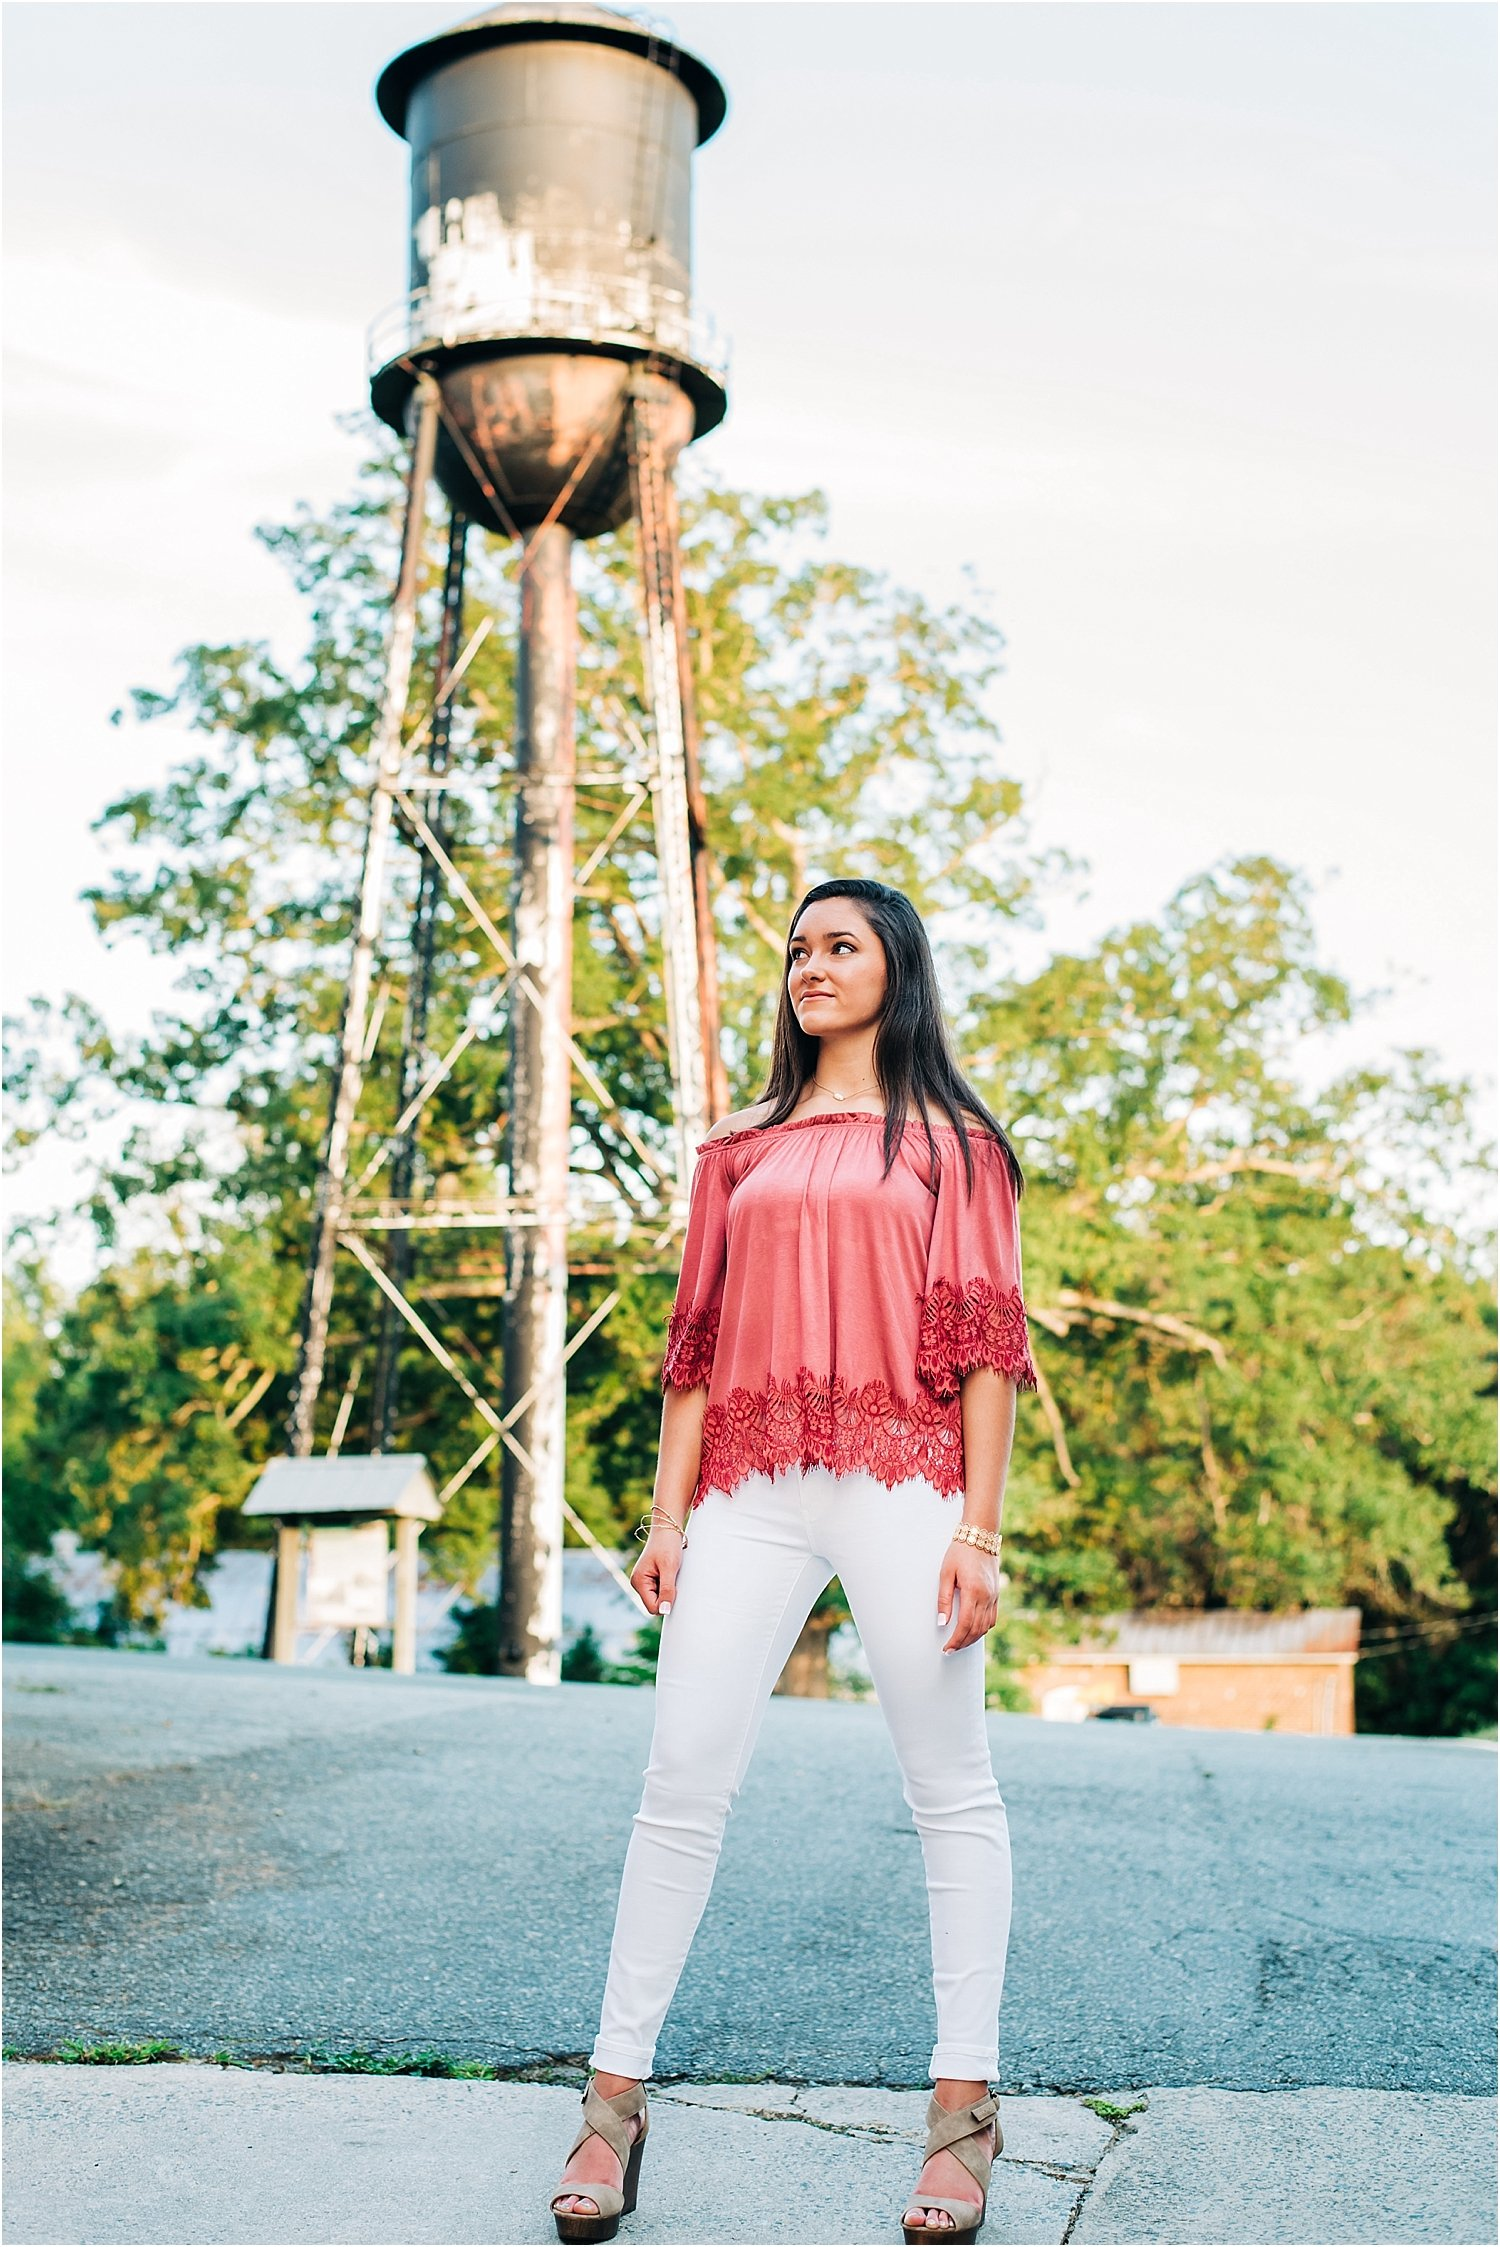 Senior pose in front of Glencoe water tower.